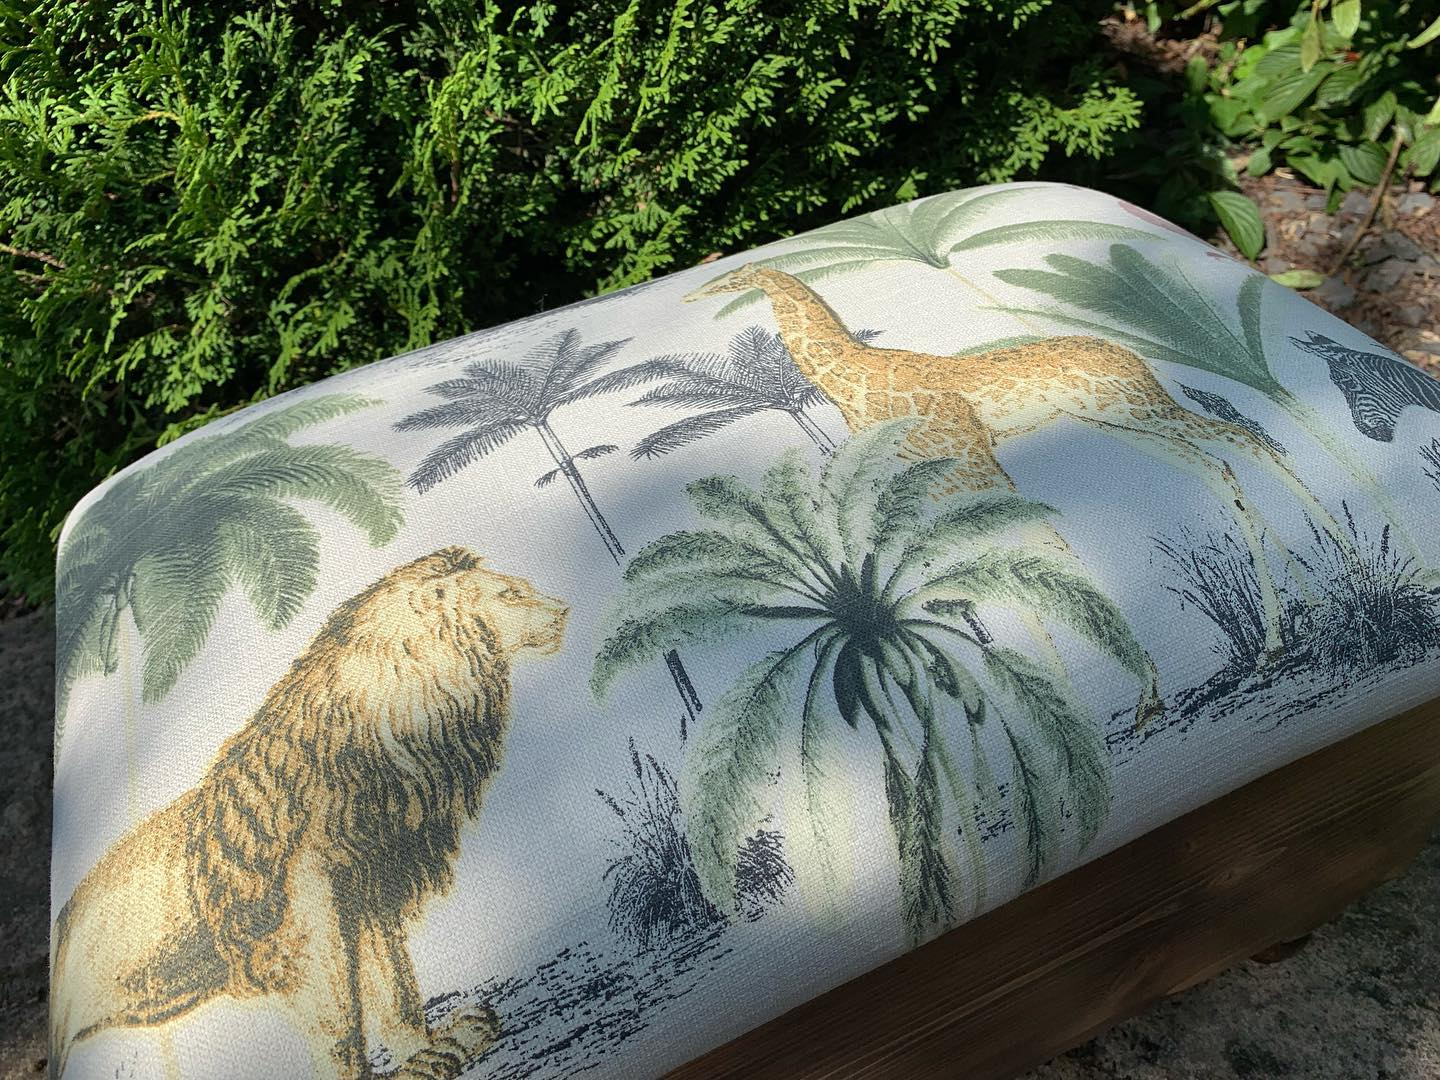 What colour scheme have you gone for in your living room? We're currently stocking up on ottomans to take to markets and there are so many fabric choices! Personally, I'm loving blues, greens and quirky prints. ...#visibilityfest #homedecor #handmade #colourscheme #ginger #tweed #home #upholstery #longleat #safari #beautifulprints #fabricdesign #pattern #livingroomdecor